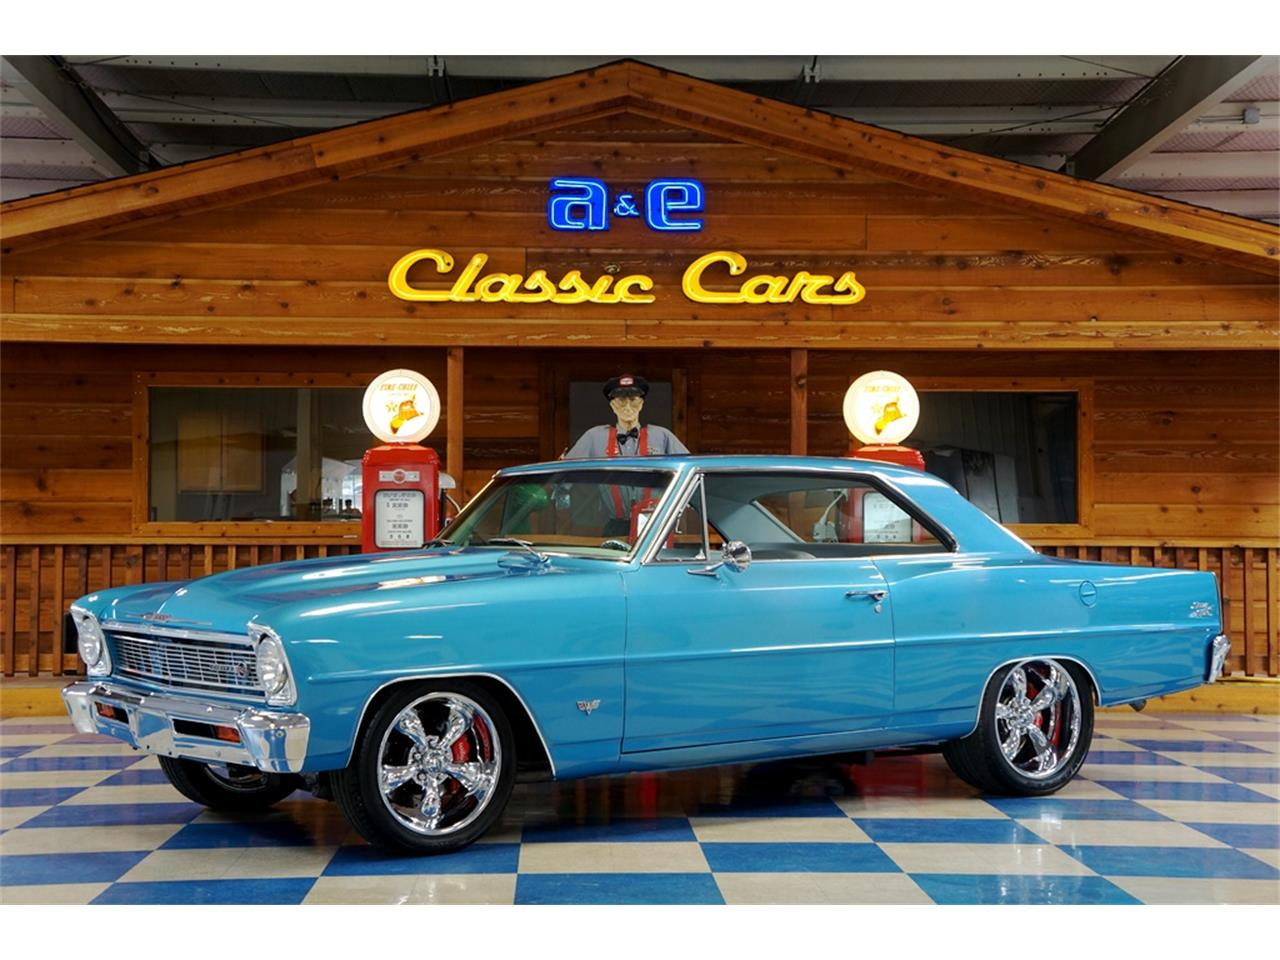 Large Picture of Classic '66 Chevrolet Nova located in New Braunfels Texas - $64,900.00 Offered by A&E Classic Cars - PWOL